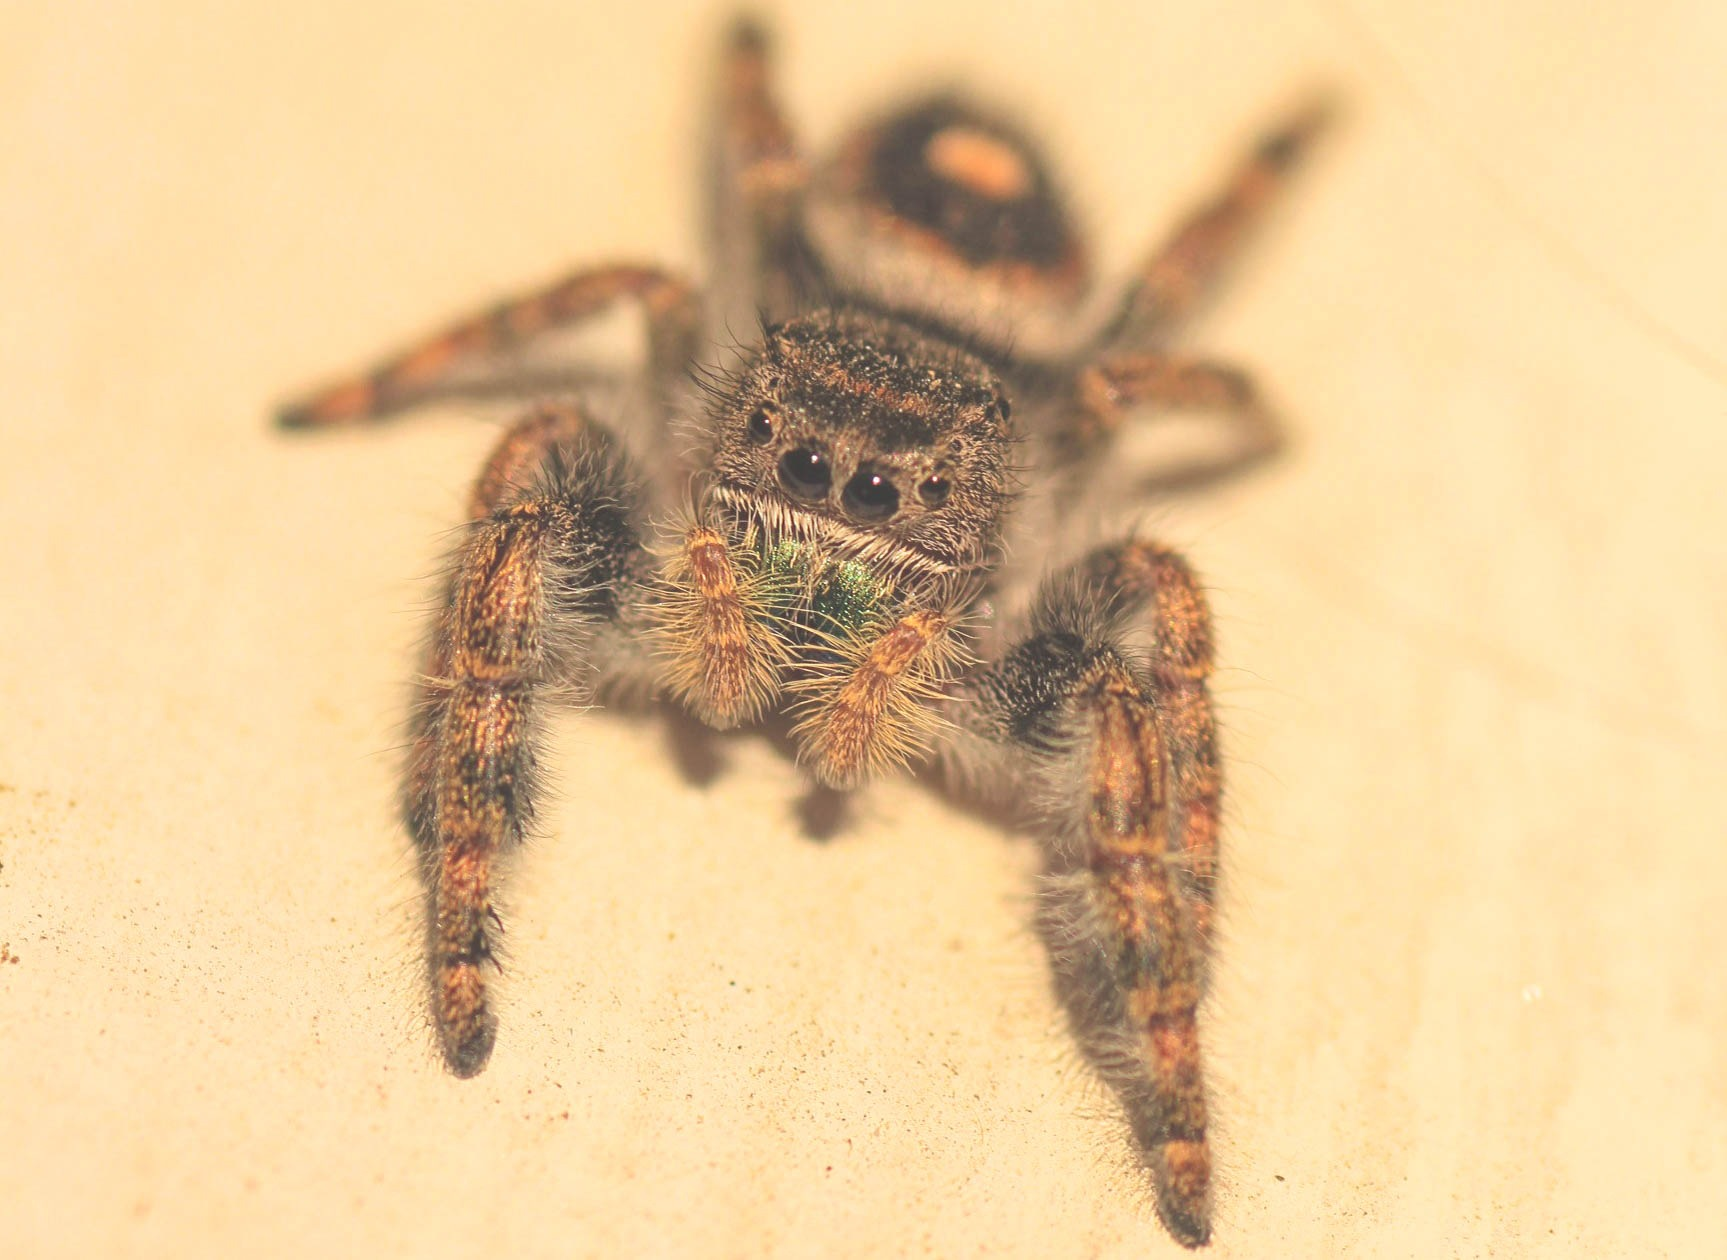 jumping spider by Bruce Potts